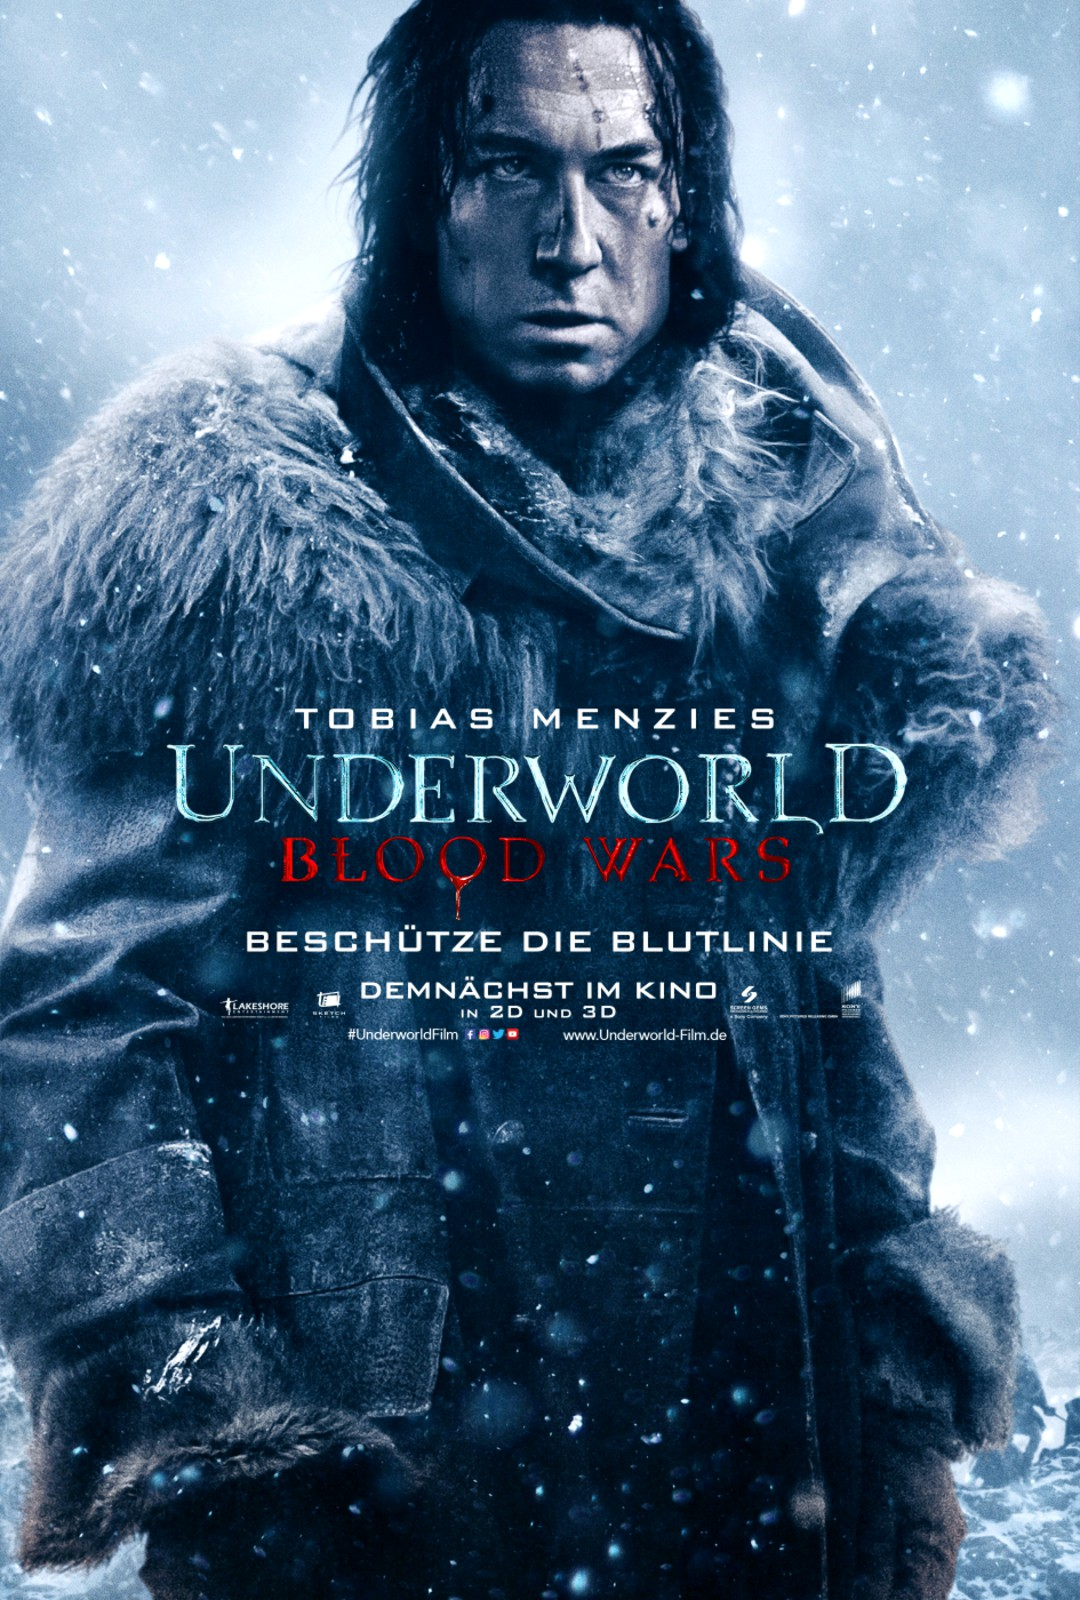 Underworld 5 - Blood Wars - Bild 7 von 7